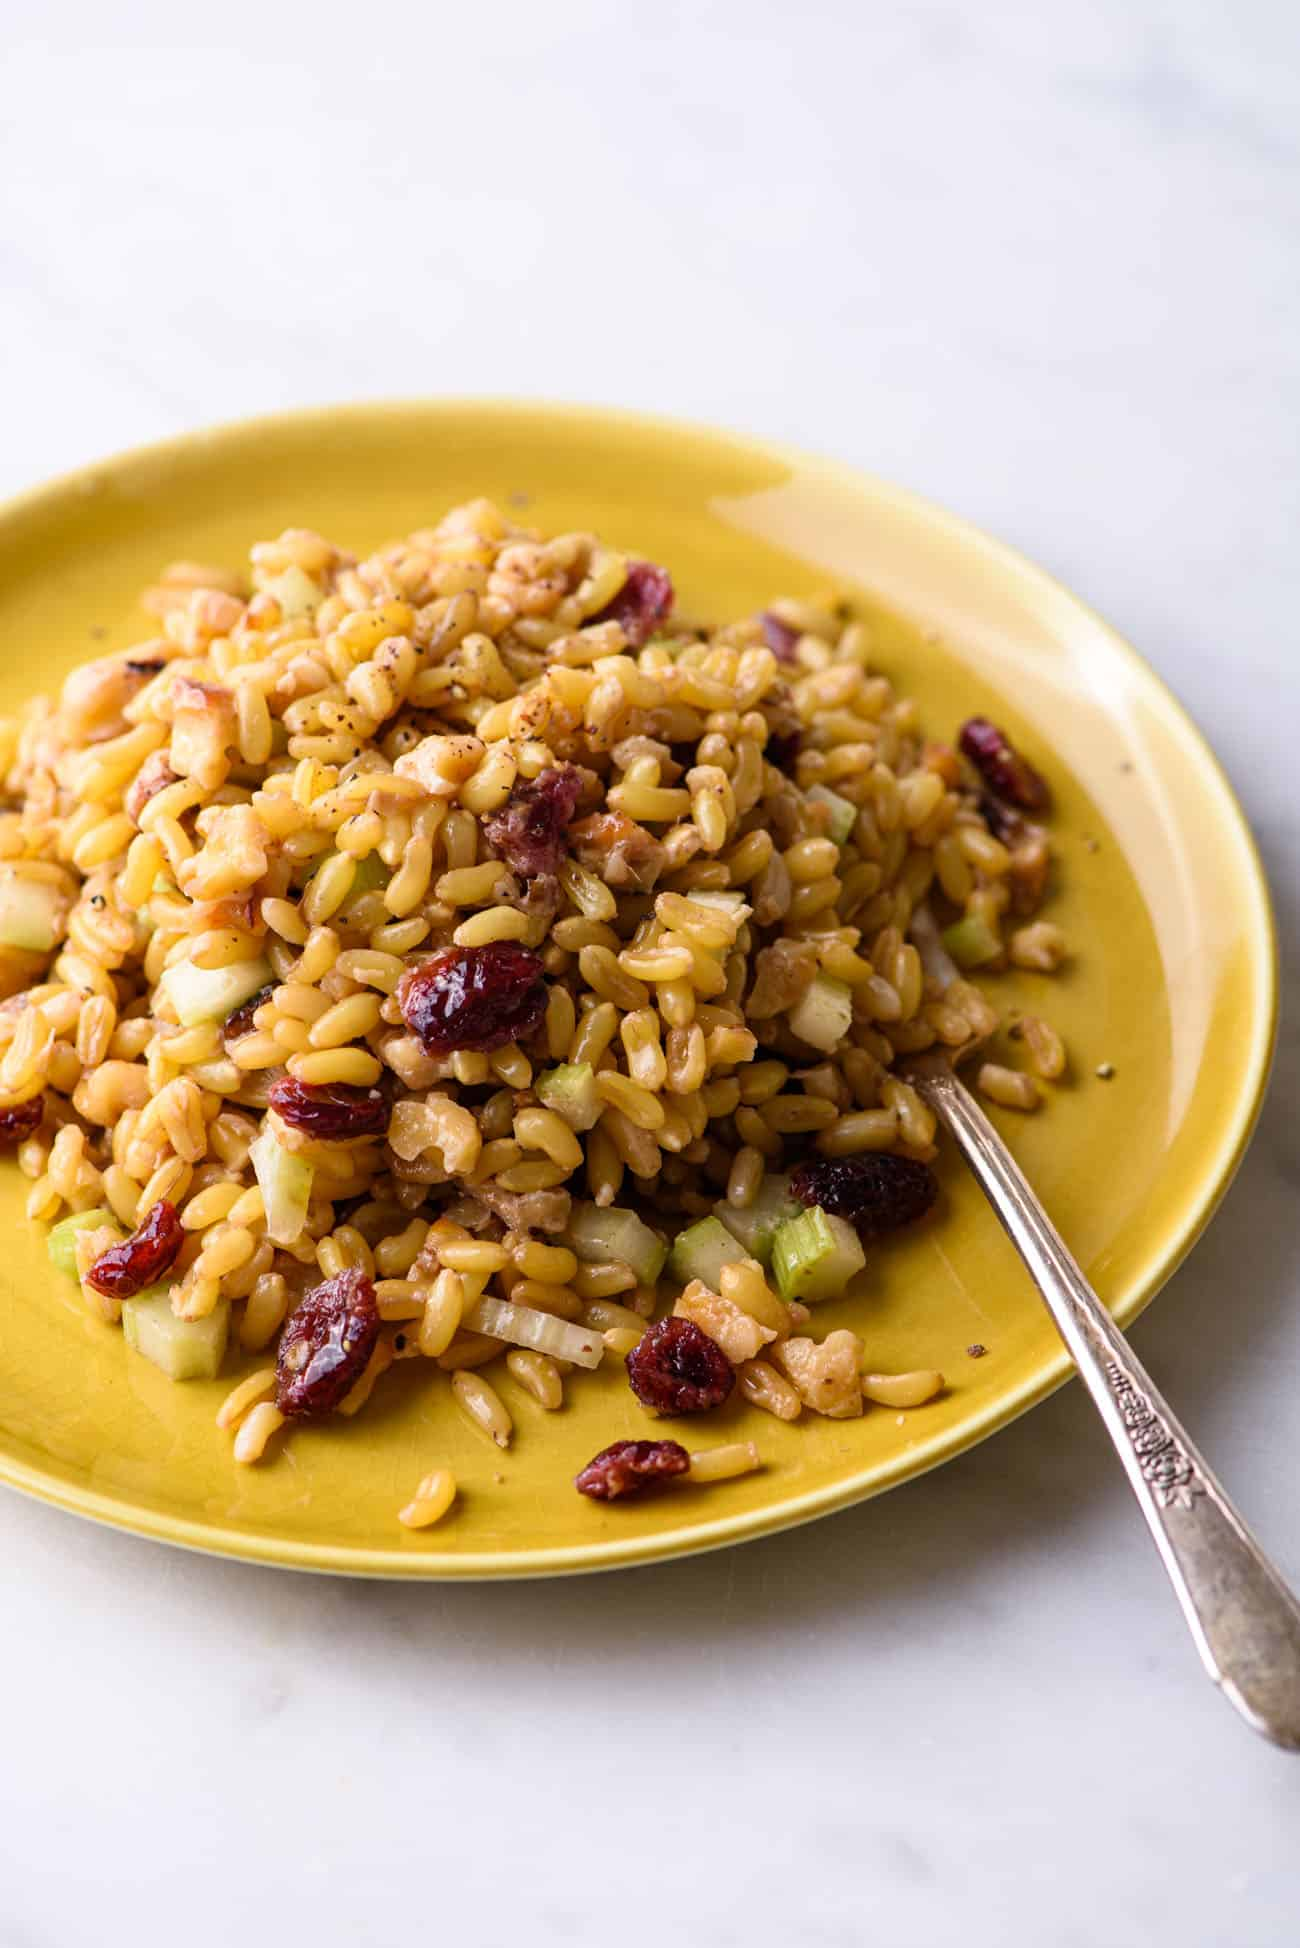 Close-up of wheatberry salad on a yellow plate with a fork